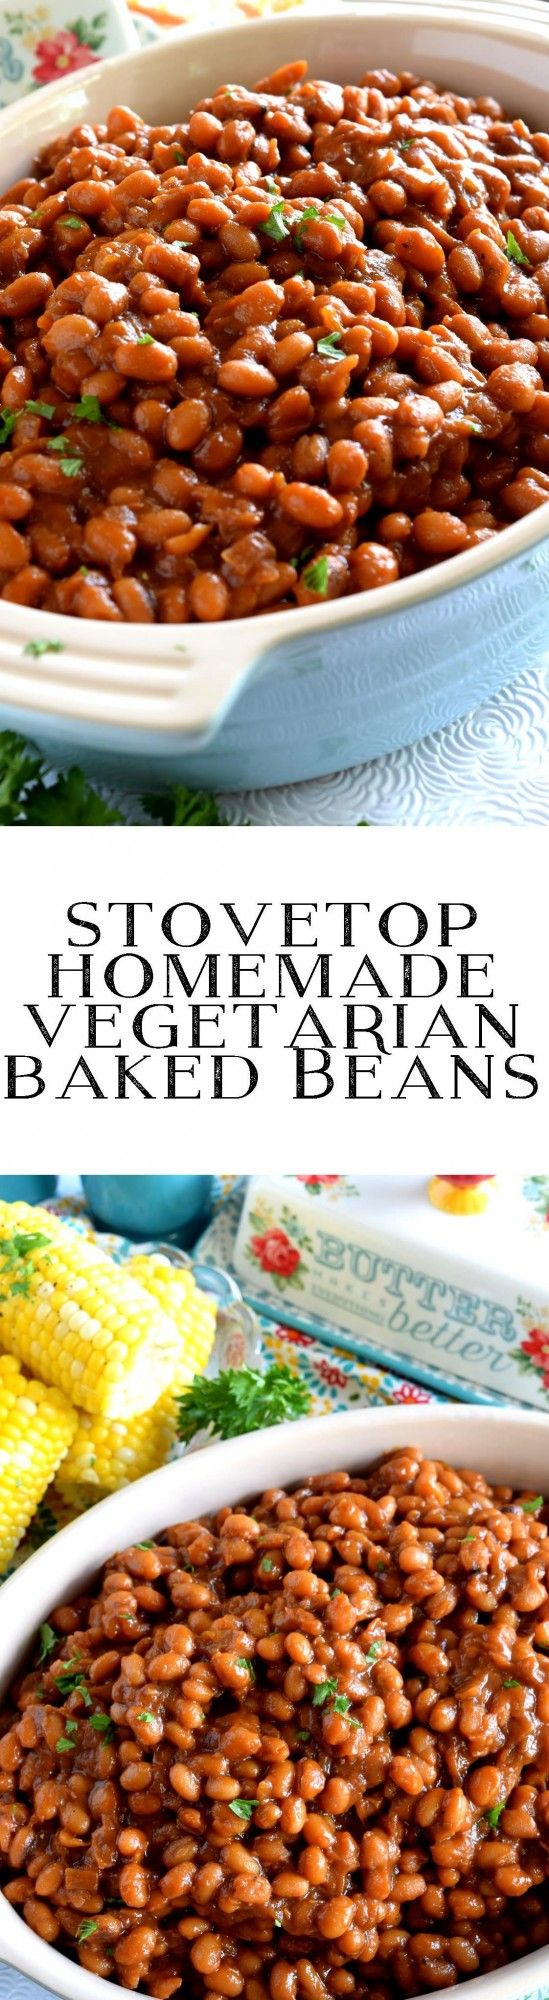 Who says Homemade Baked Beans needs to have bacon?  And who says they need to be baked?  Stovetop Homemade Vegetarian Baked Beans are fast, cheap, and easy – and nobody will notice the missing pork product! I love baked beans.…